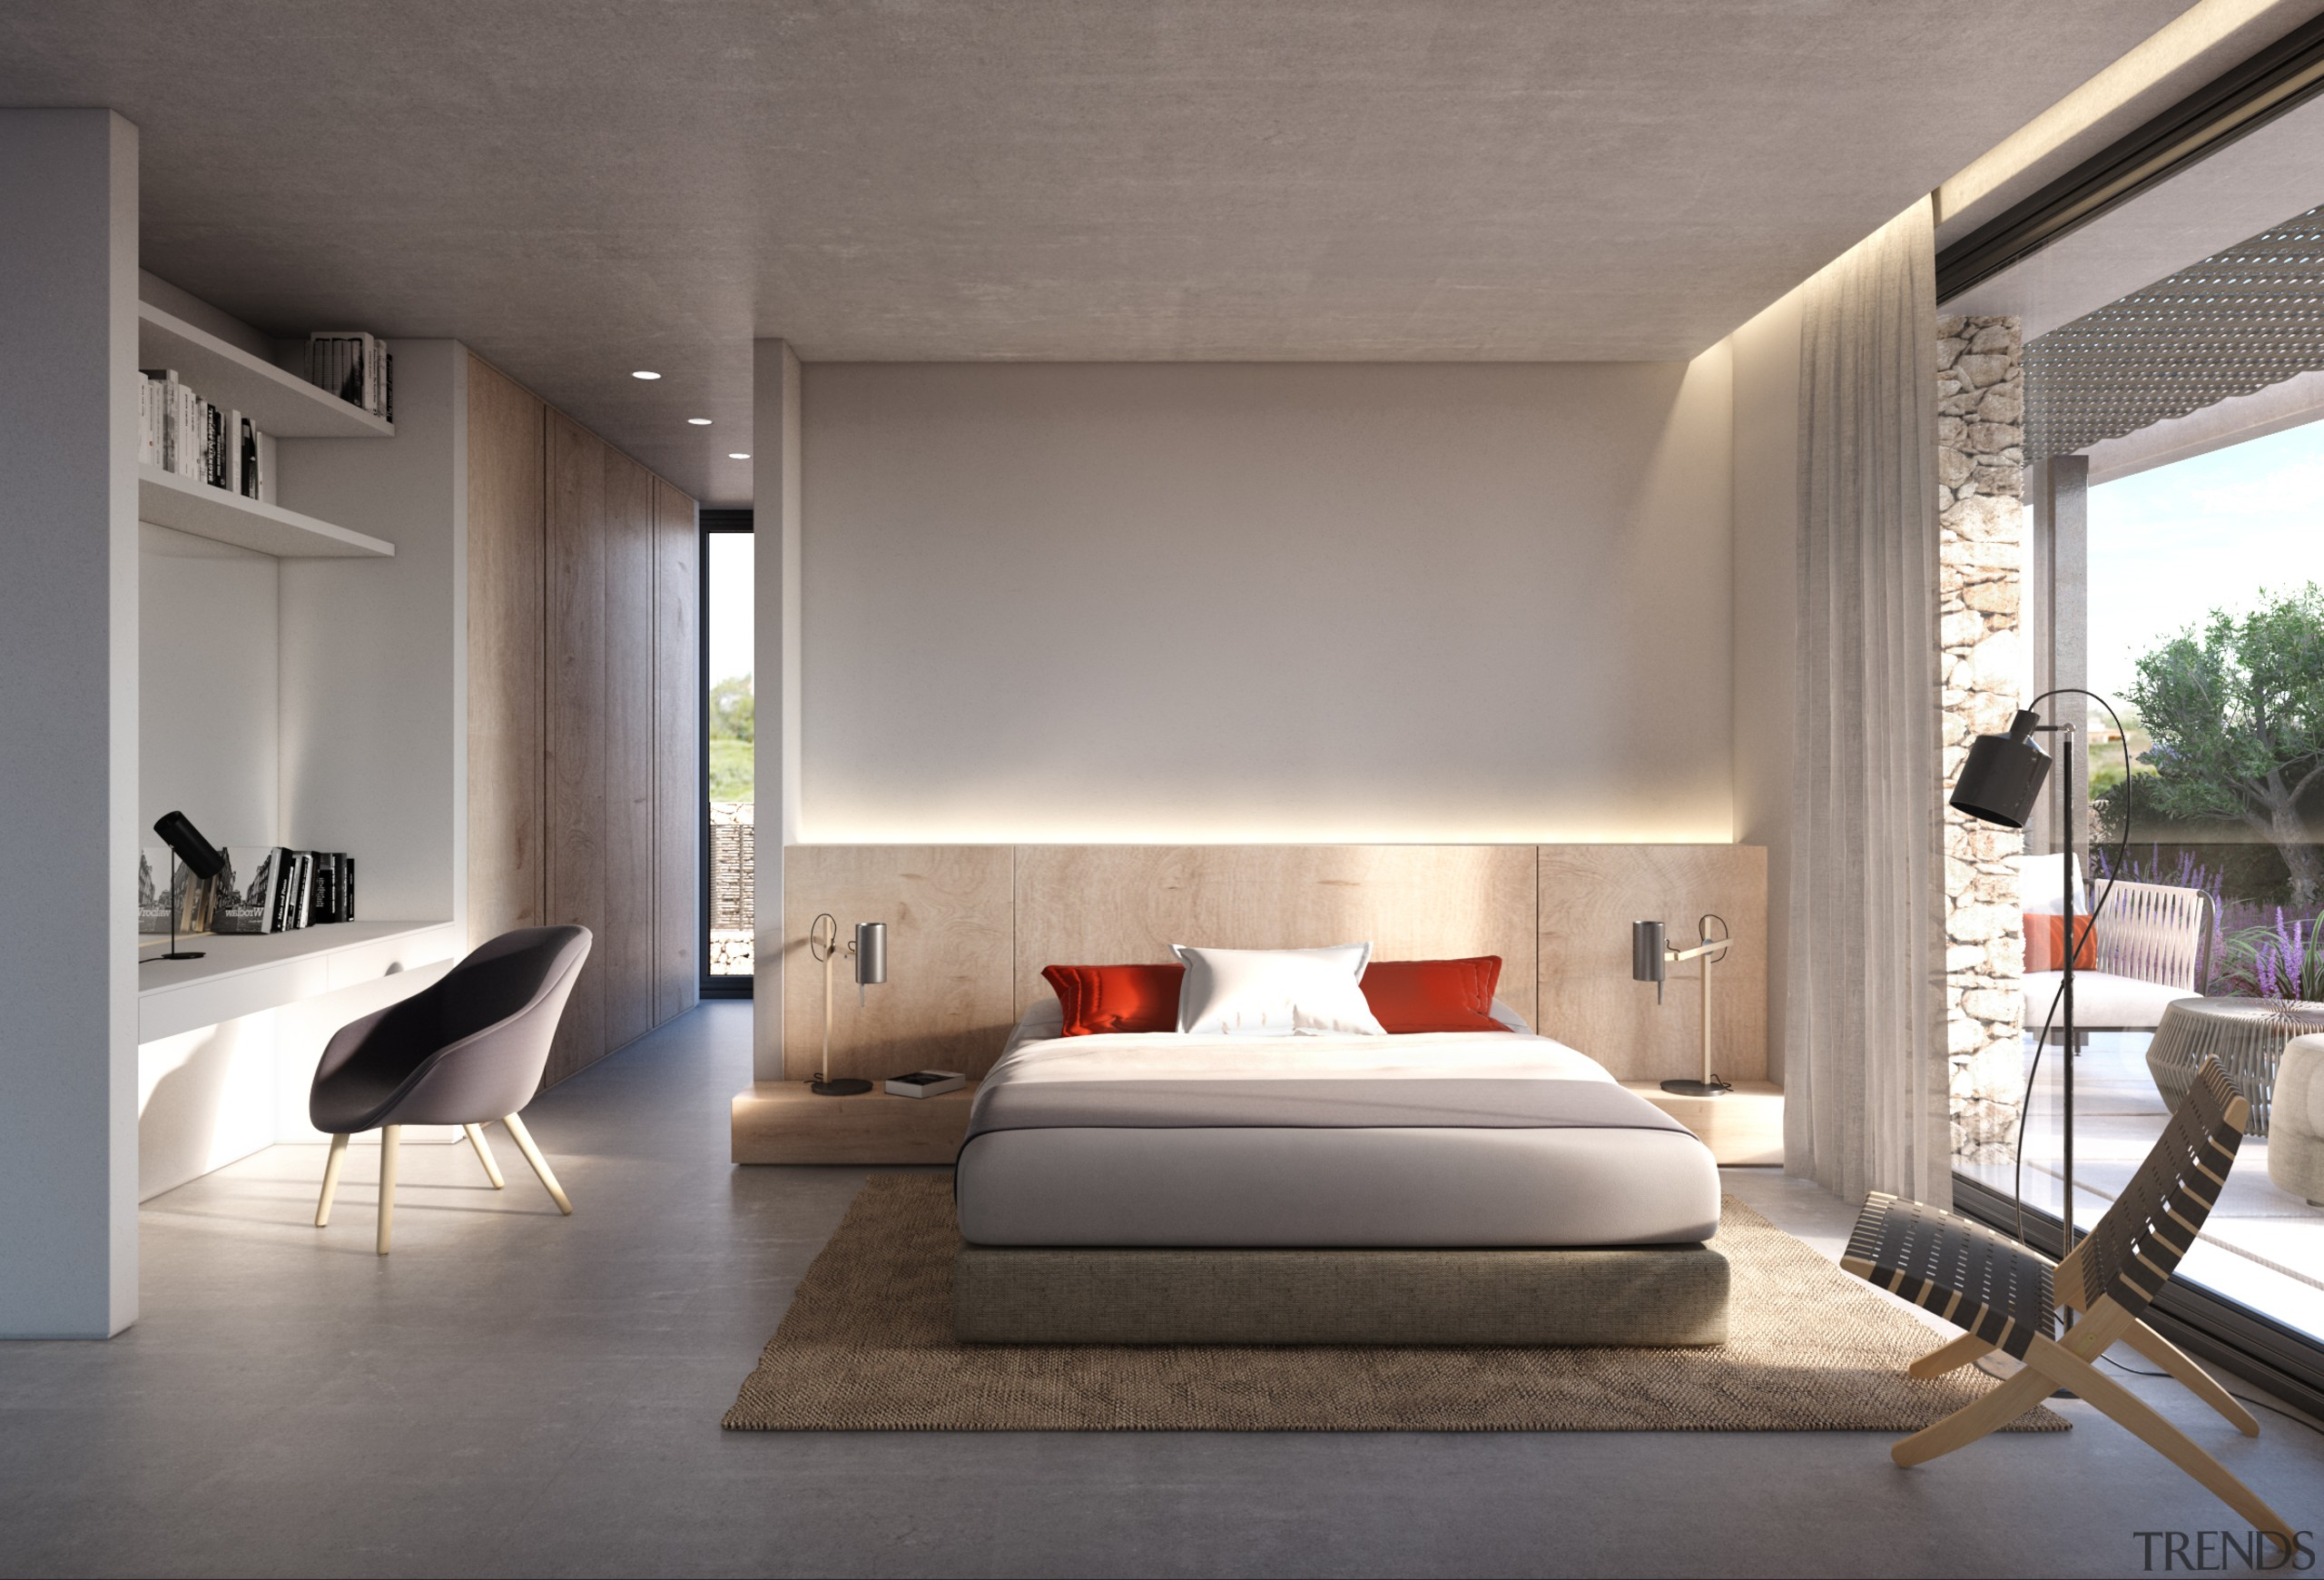 Island life – Bedroom suite - architecture | architecture, bed frame, bedroom, ceiling, floor, furniture, house, interior design, room, wall, gray